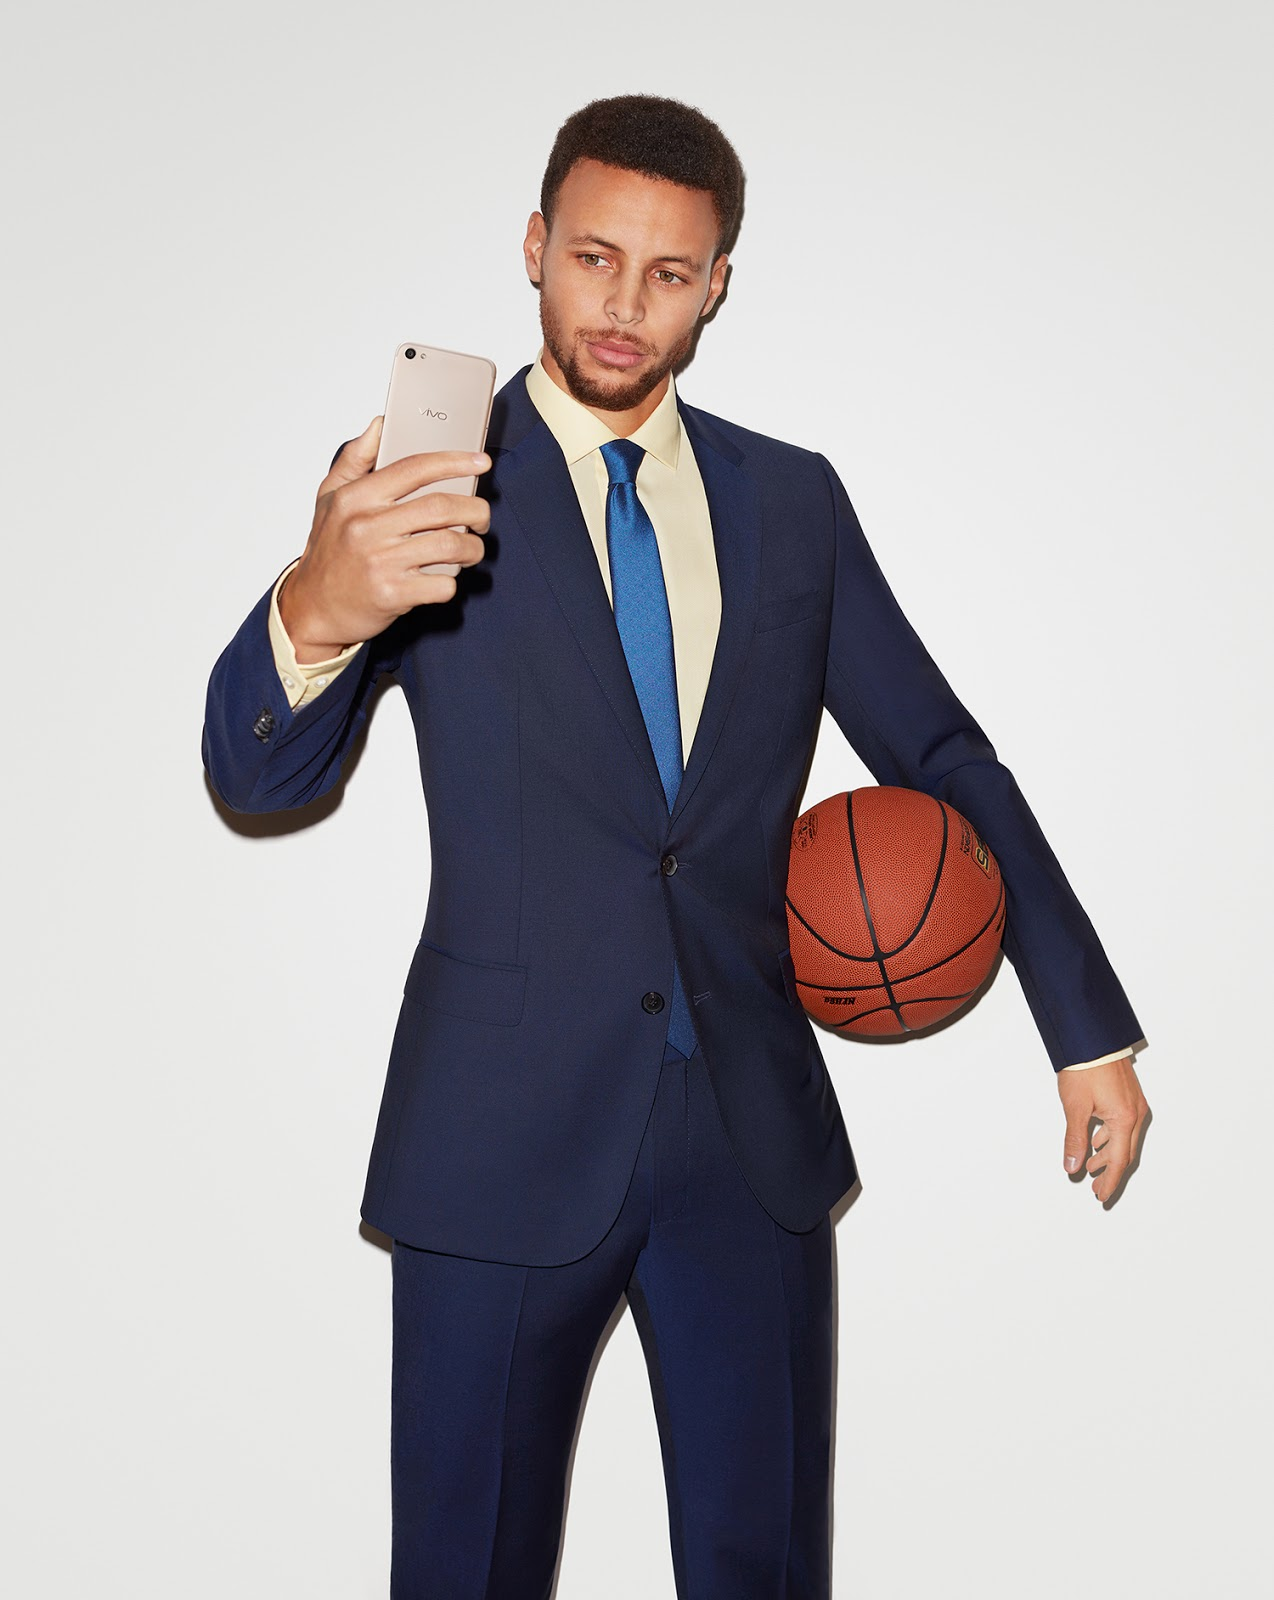 cad85cdd6597 Top five premium global brand1 Vivo ambassador and National Basketball  Association (NBA) superstar Stephen Curry commends the leading smartphone  brand for ...